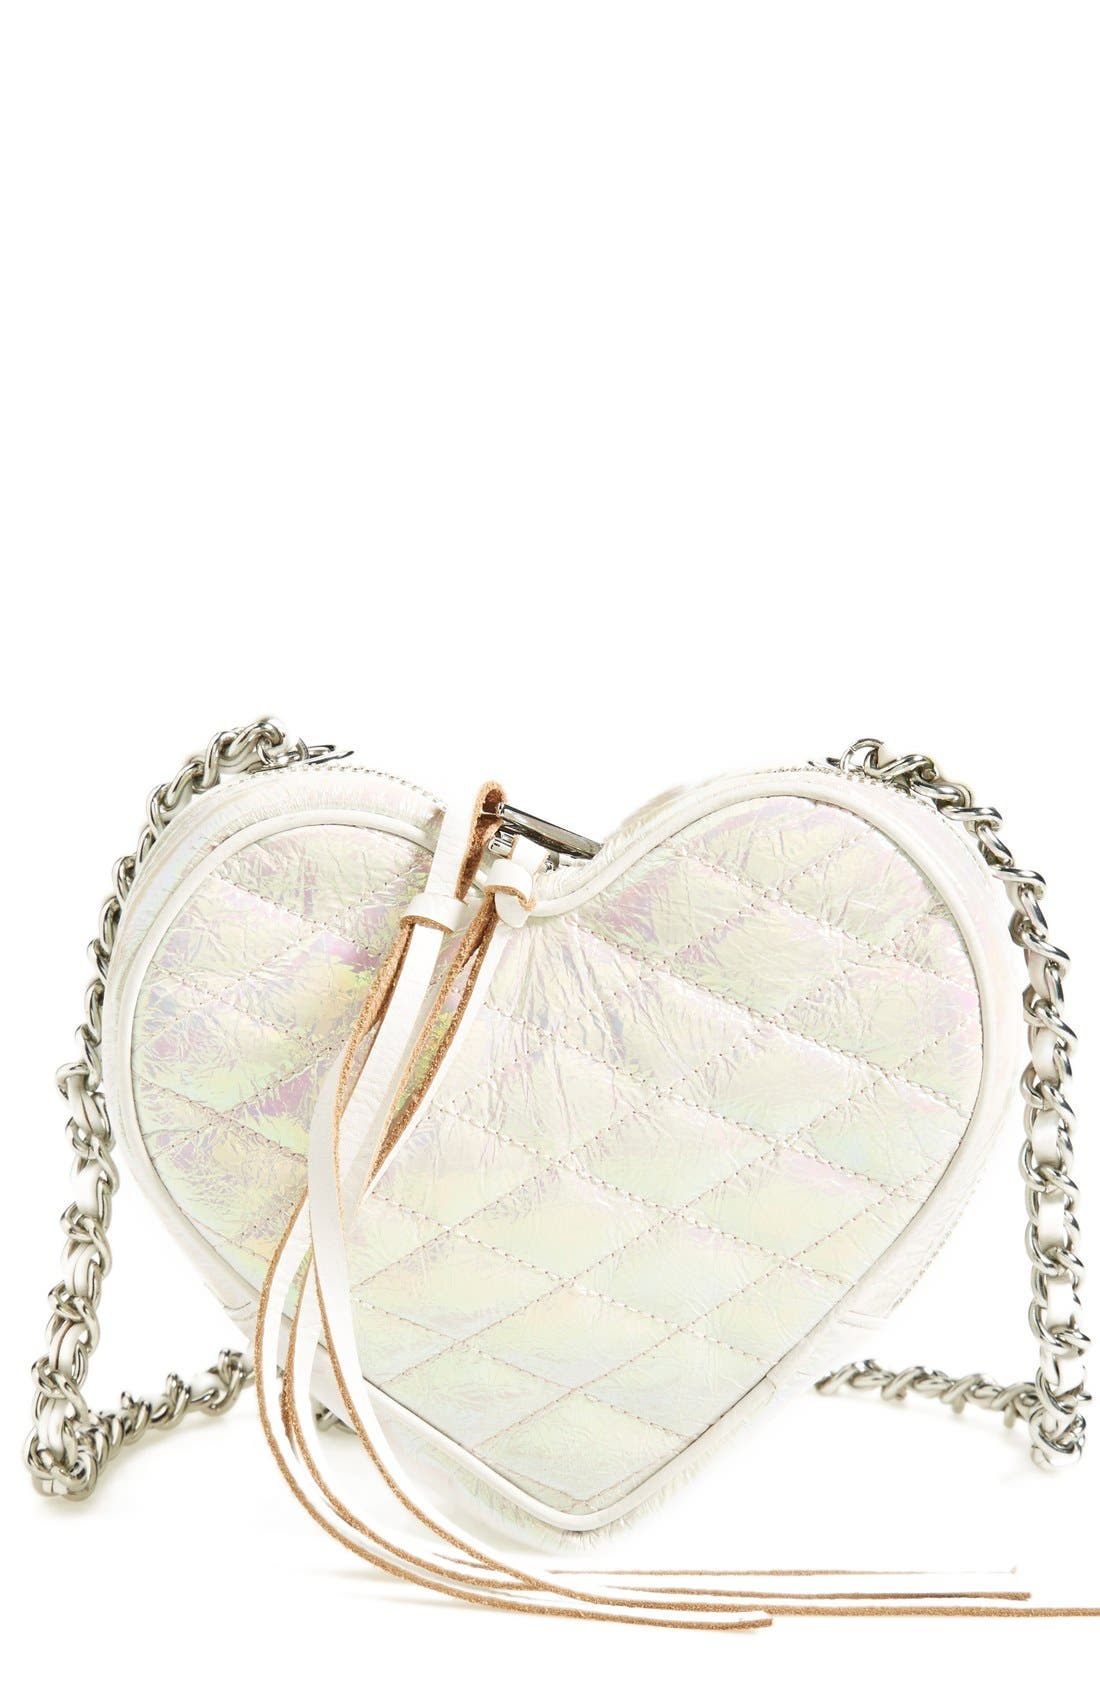 Heart Crossbody Bag,                         Main,                         color, 100